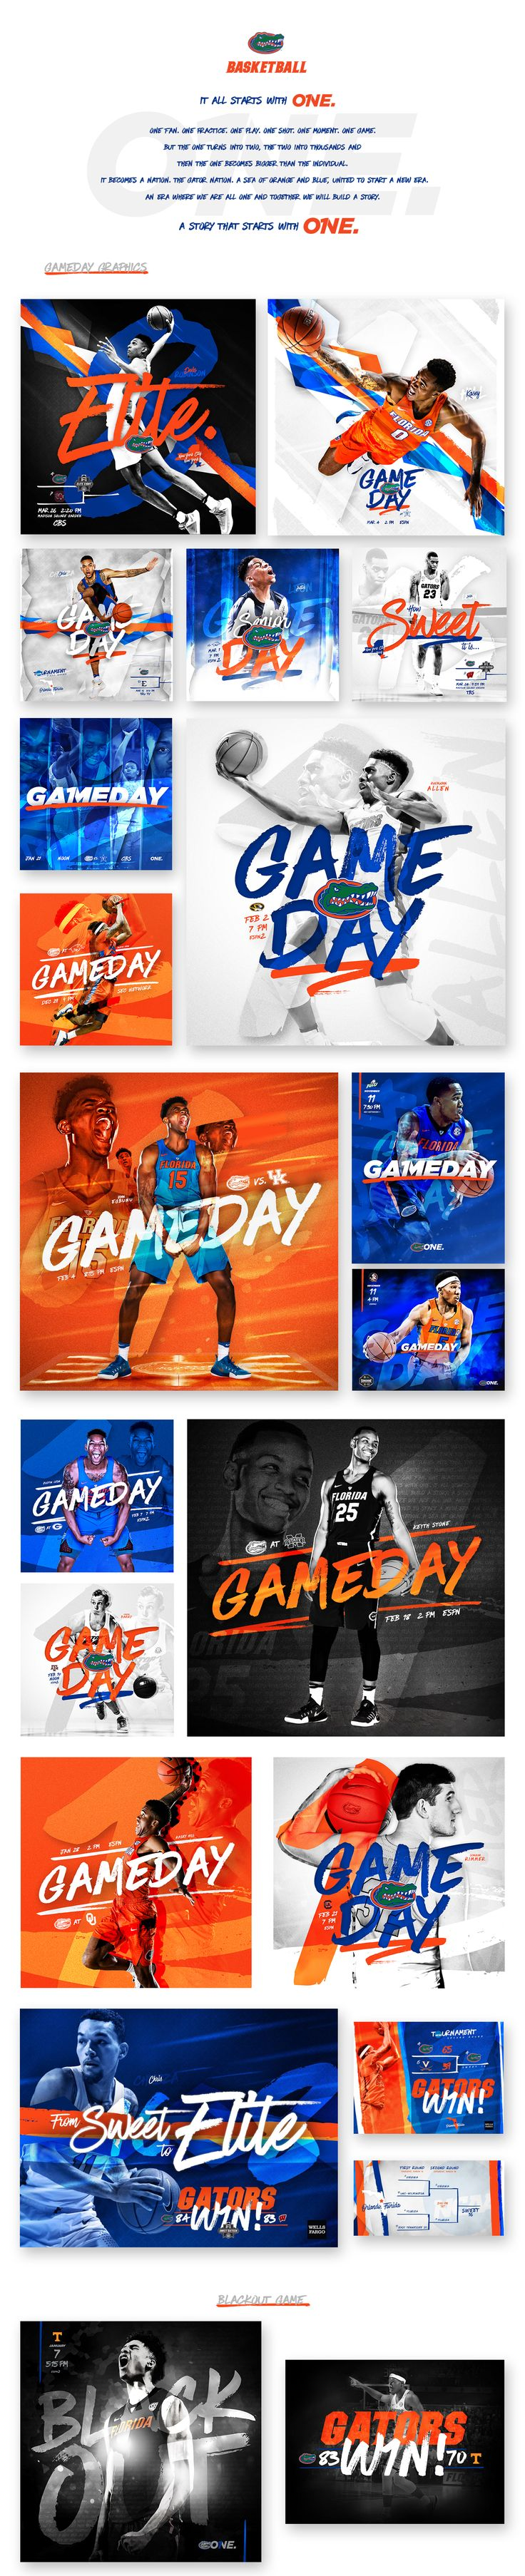 2016-17 Florida Gators Men's Basketball Social Graphics on Behance